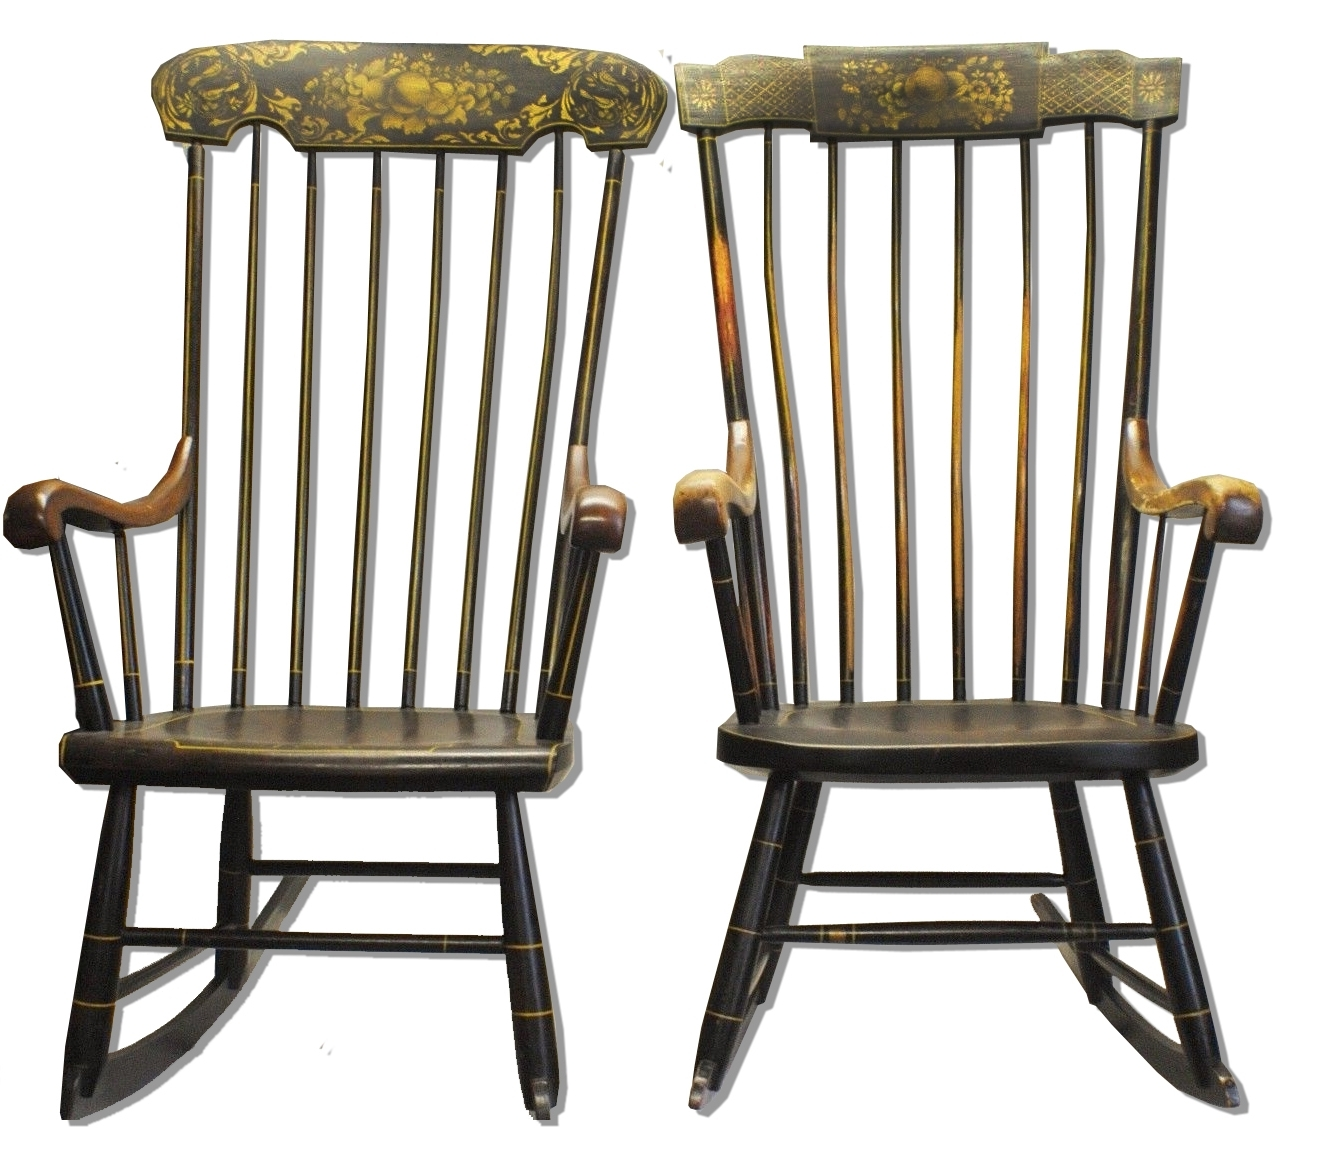 Lincoln's Rocking Chairs Sell For $26K – Antique Trader For Recent Antique Rocking Chairs (View 11 of 15)